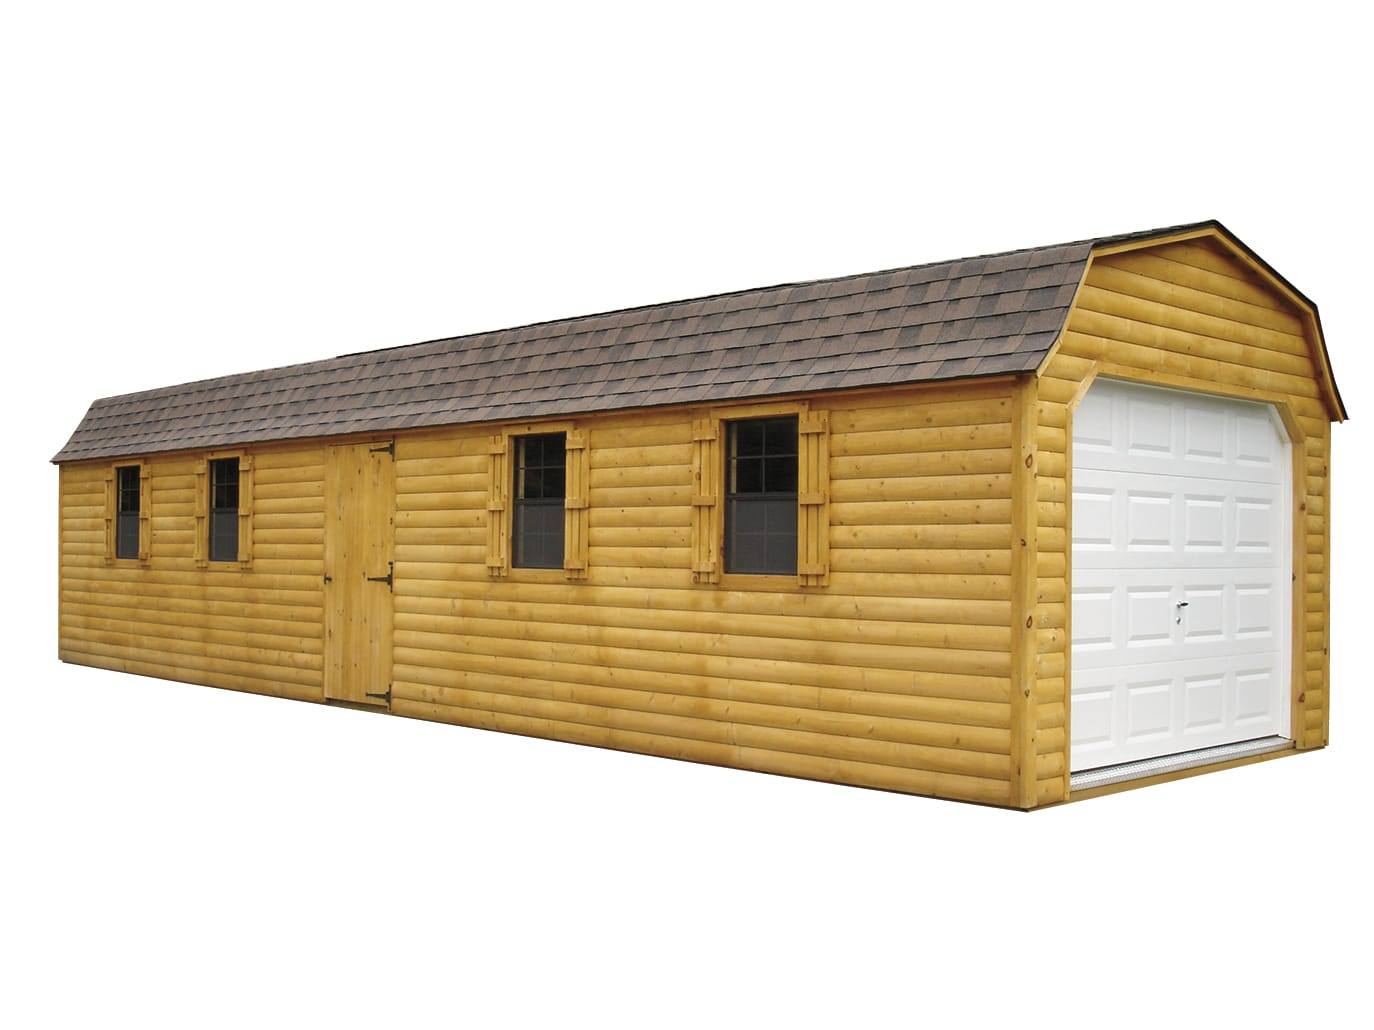 Super Barn Garages - Winchester Amish Connection